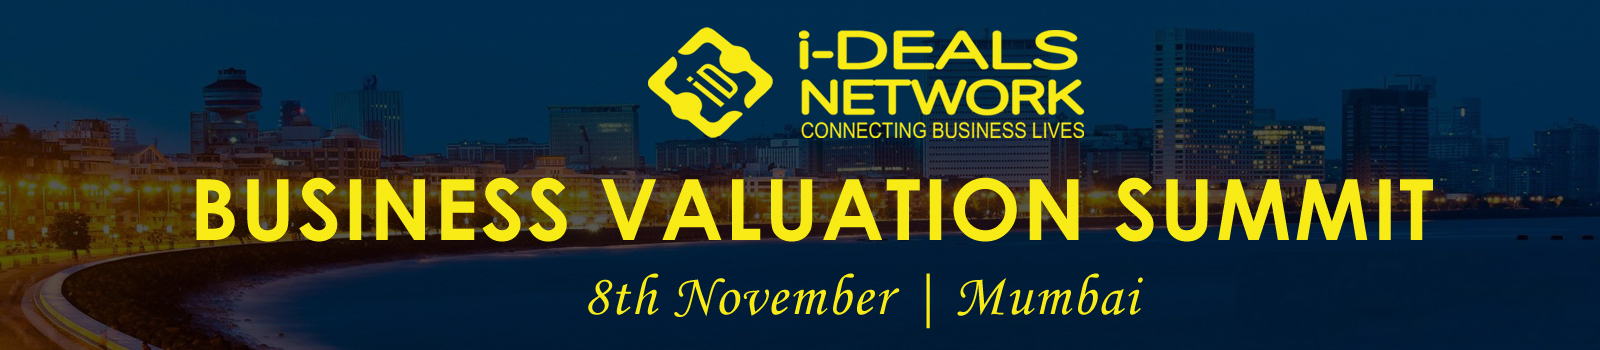 BUSINESS-VALUATION_SUBMIT-1